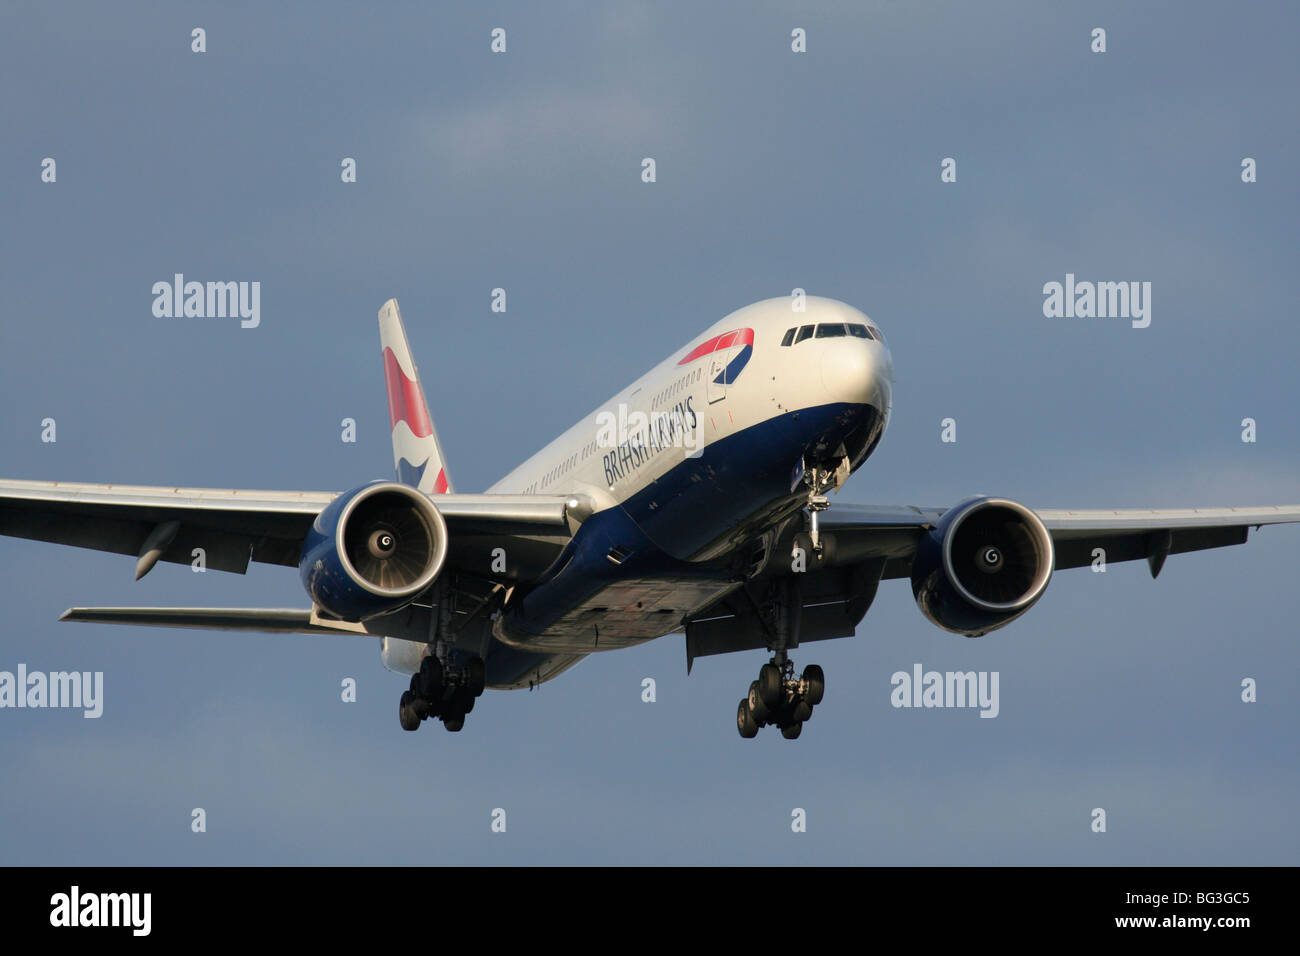 British Airways Boeing 777-200ER long haul twin engine passenger jet airliner on approach to Heathrow - Stock Image